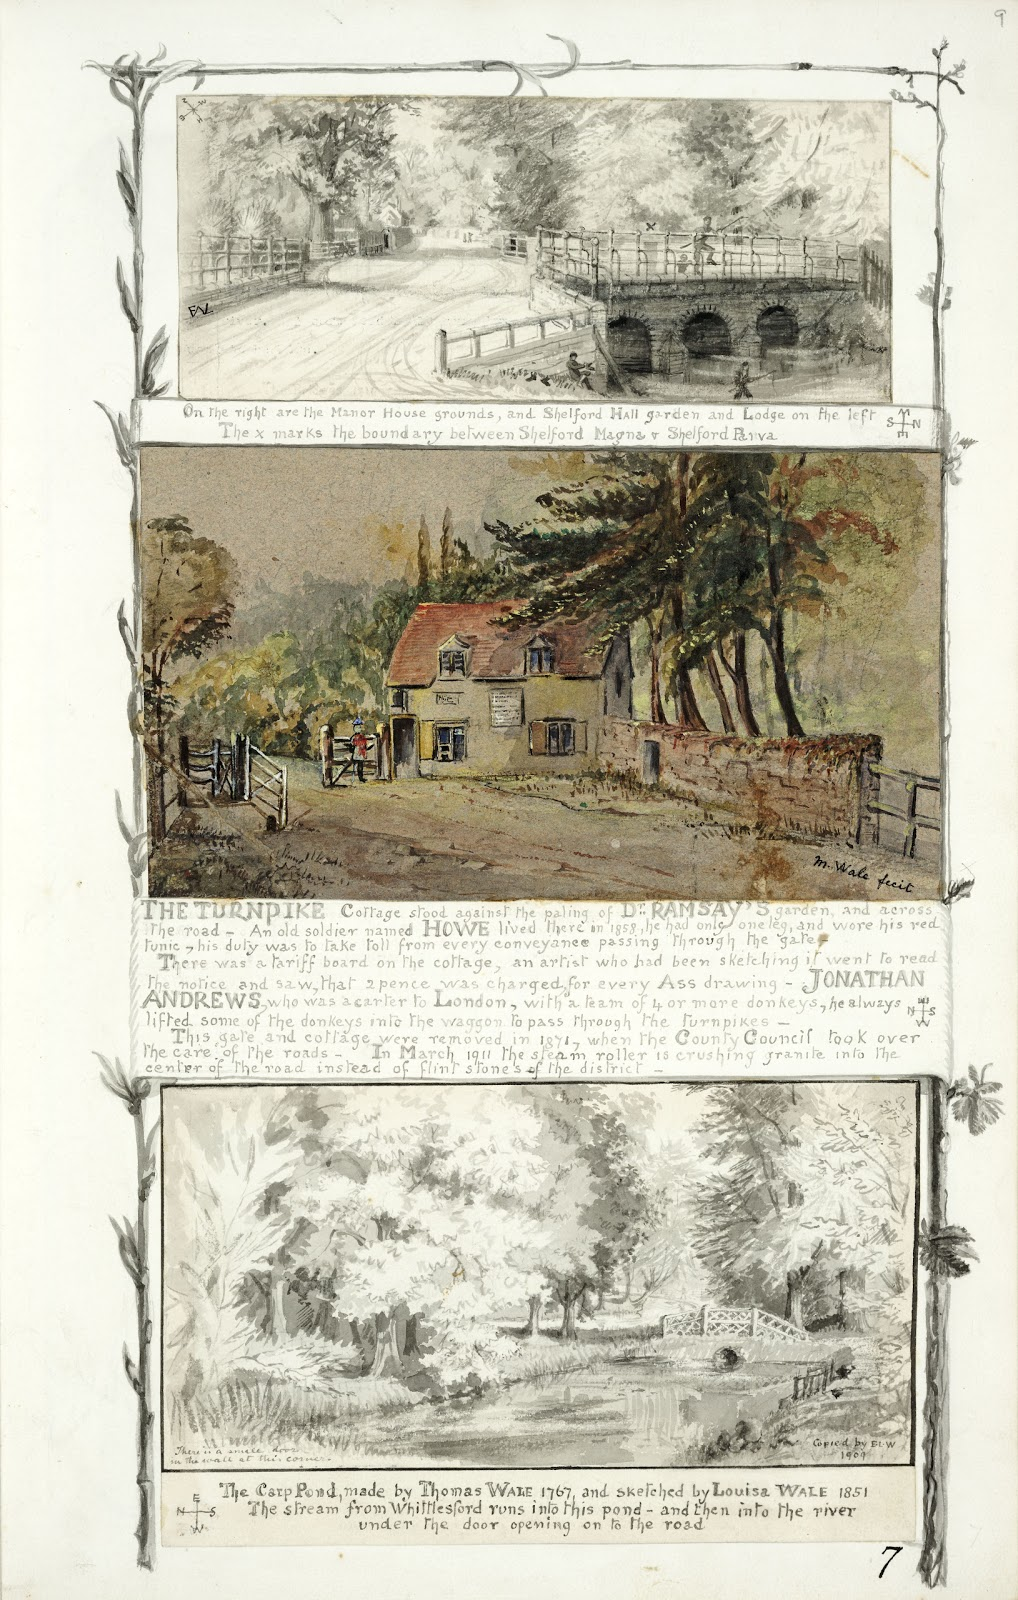 A Record of Shelford Parva by Fanny Wale P7 fo.9, page 7:. At the top of the page is a black and white watercolour of the Manor house grounds, Shelford hall garden and Lodge, the boundary between Great and Little Shelford is marked. Underneath is a coloured watercolour painting of the Turnpike cottage and a description of the man who took care of it. At the bottom is a black and white watercolour of the carp pond made by Thomas Wale 1767, copied in 1909 from a sketch by Louisa Wale of 1851. A black and white watercolour border of foliage borders the three pictures. [fo. 7]